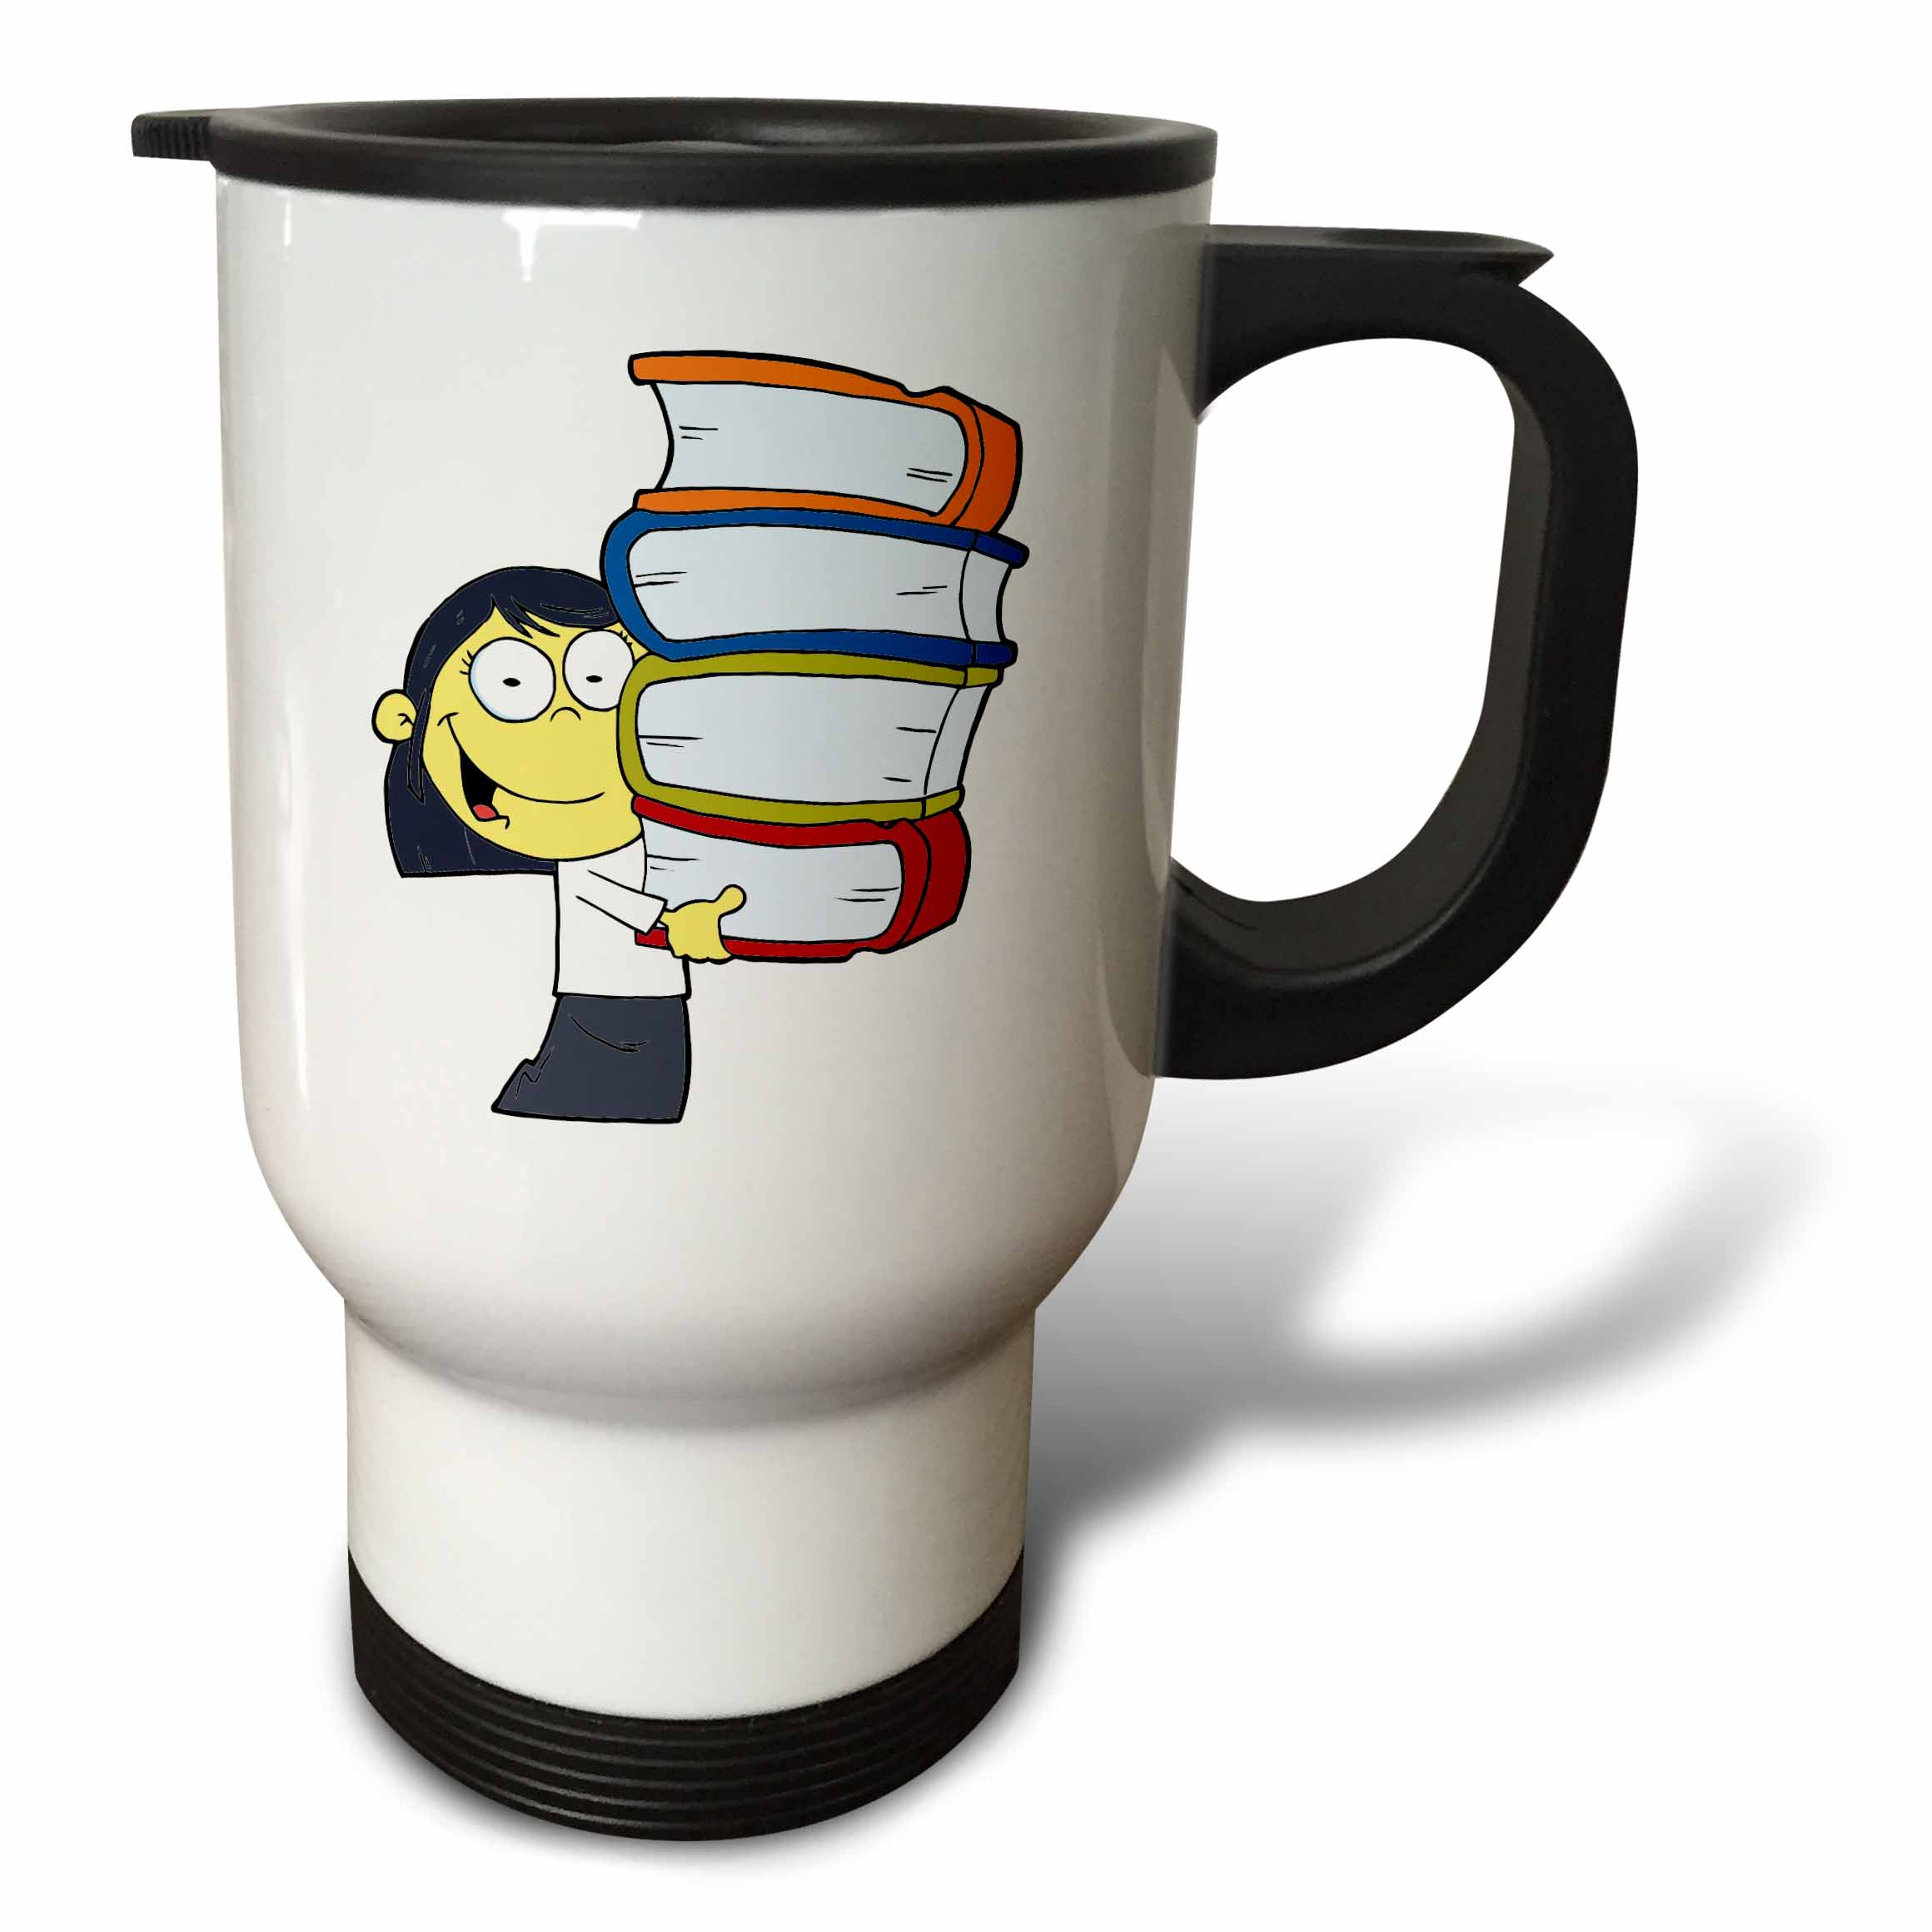 3dRose Cute Asian Girl Student With Lots Of Books, Travel Mug, 14oz, Stainless Steel